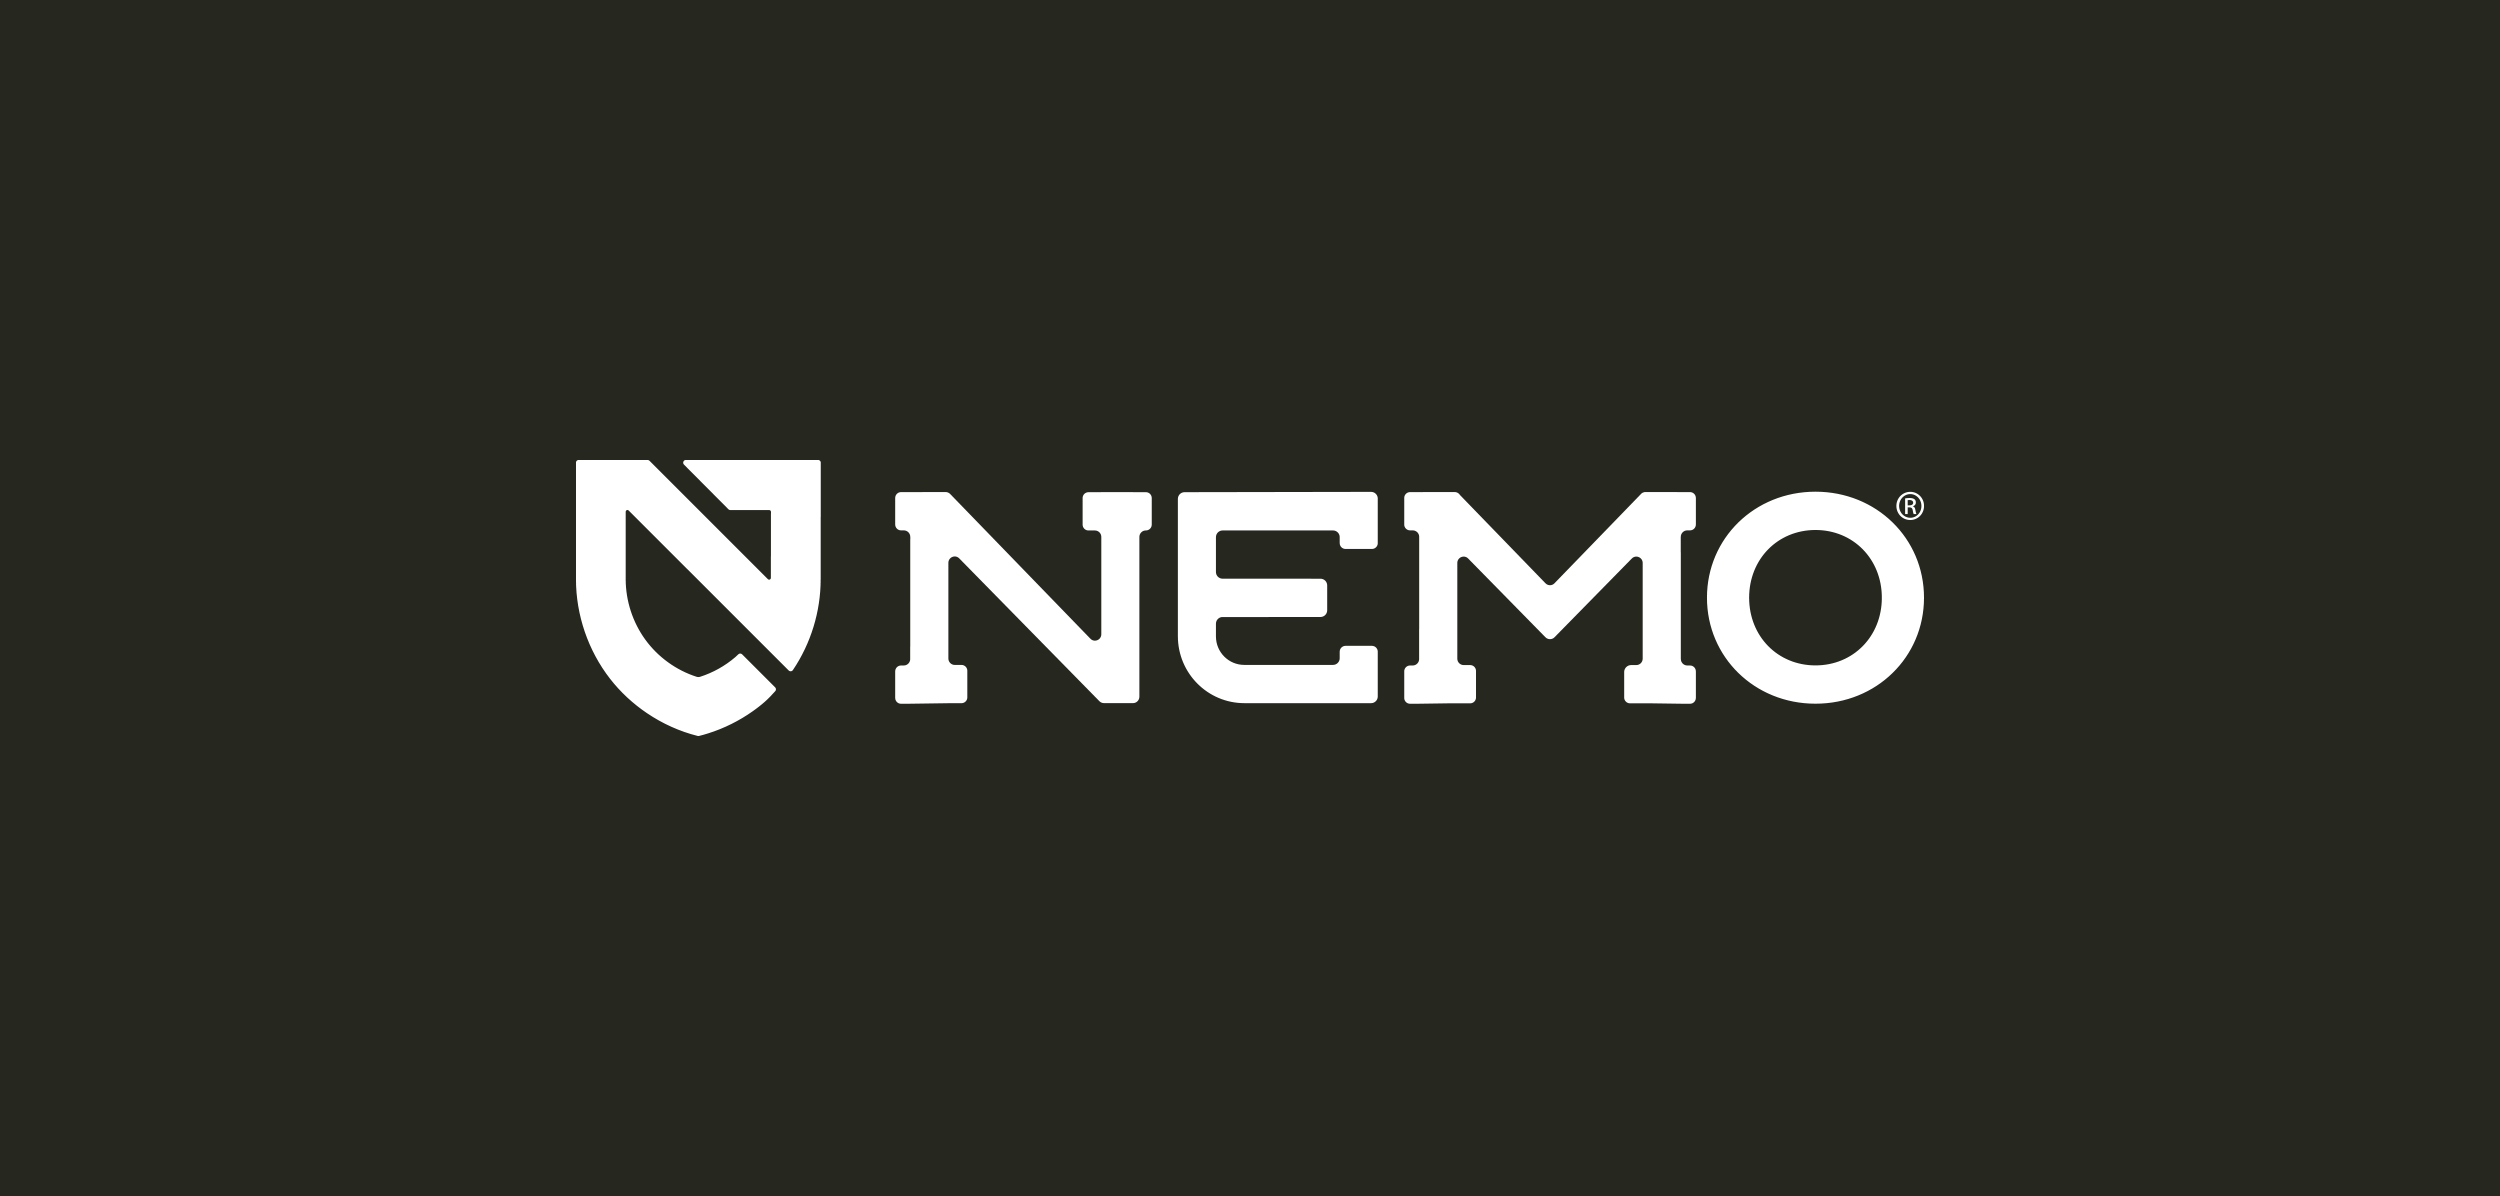 nemo-equipment-rebrand-branding-design-graphic-studio-agency-outdoor-backpackging-packaging-5.png